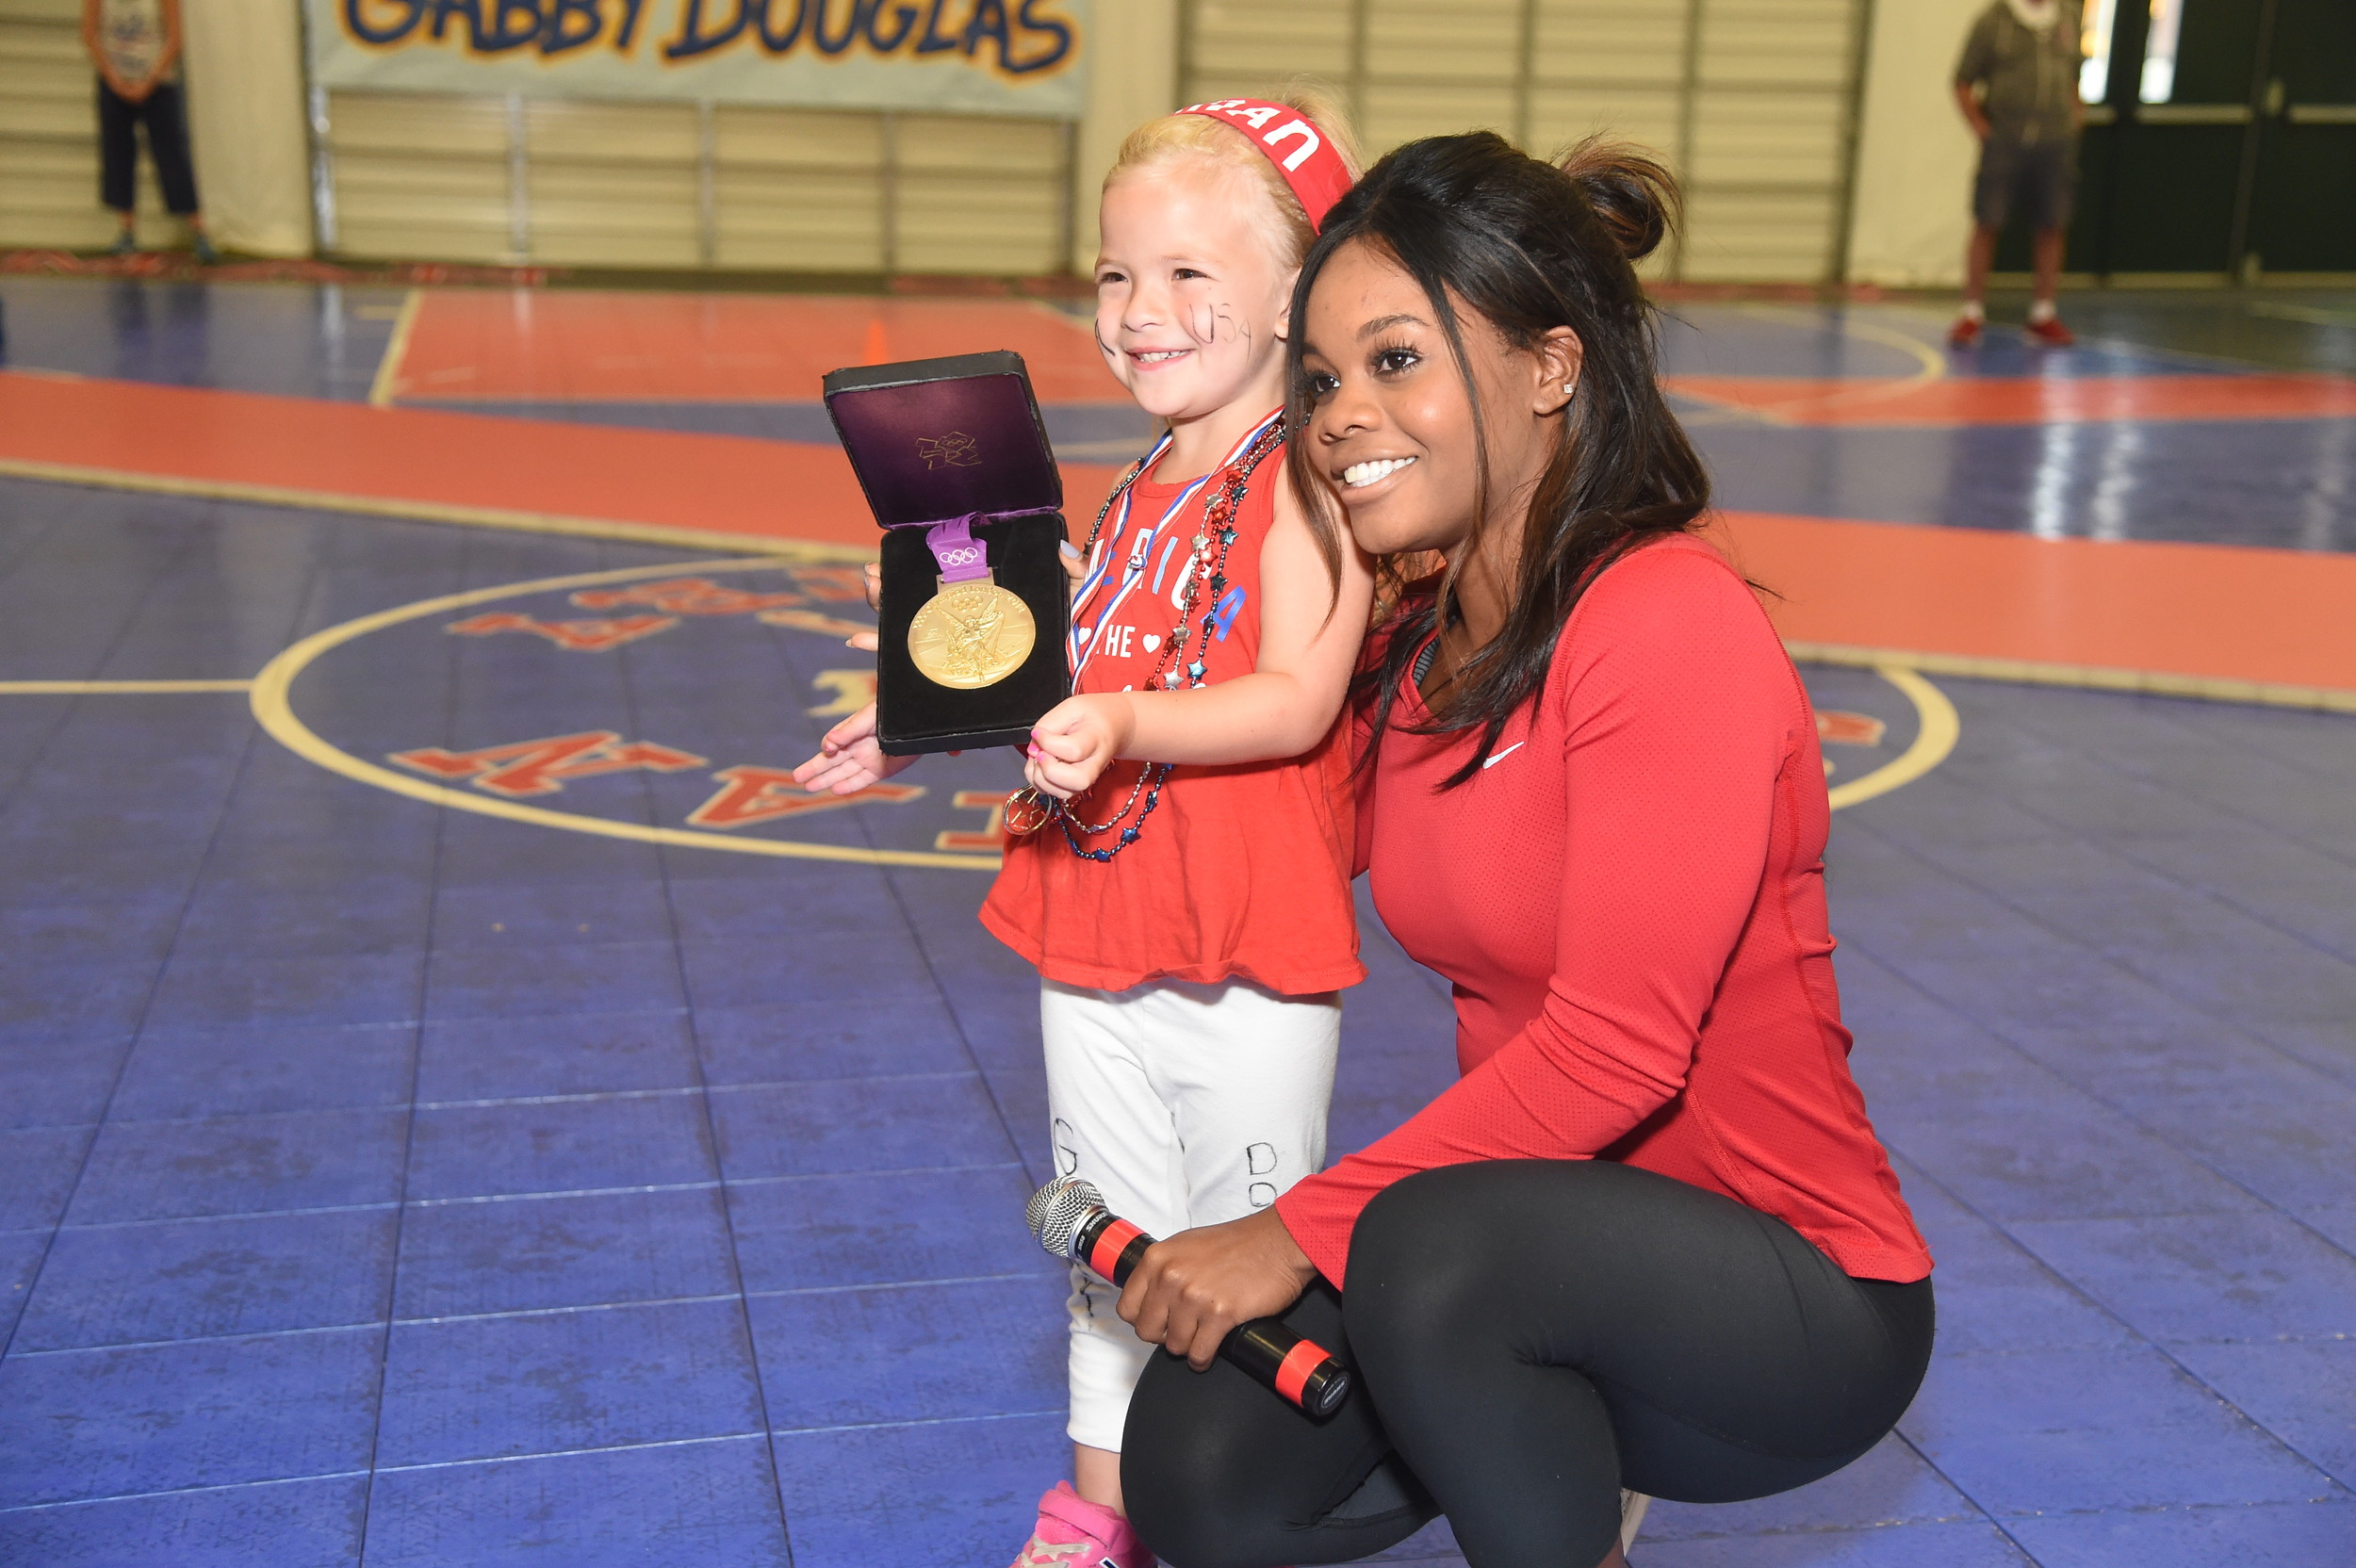 Olympian gabby douglas tells coleman country campers to keep trying camper emma rice 5 was thrilled to meet gabby douglas and hold one of m4hsunfo